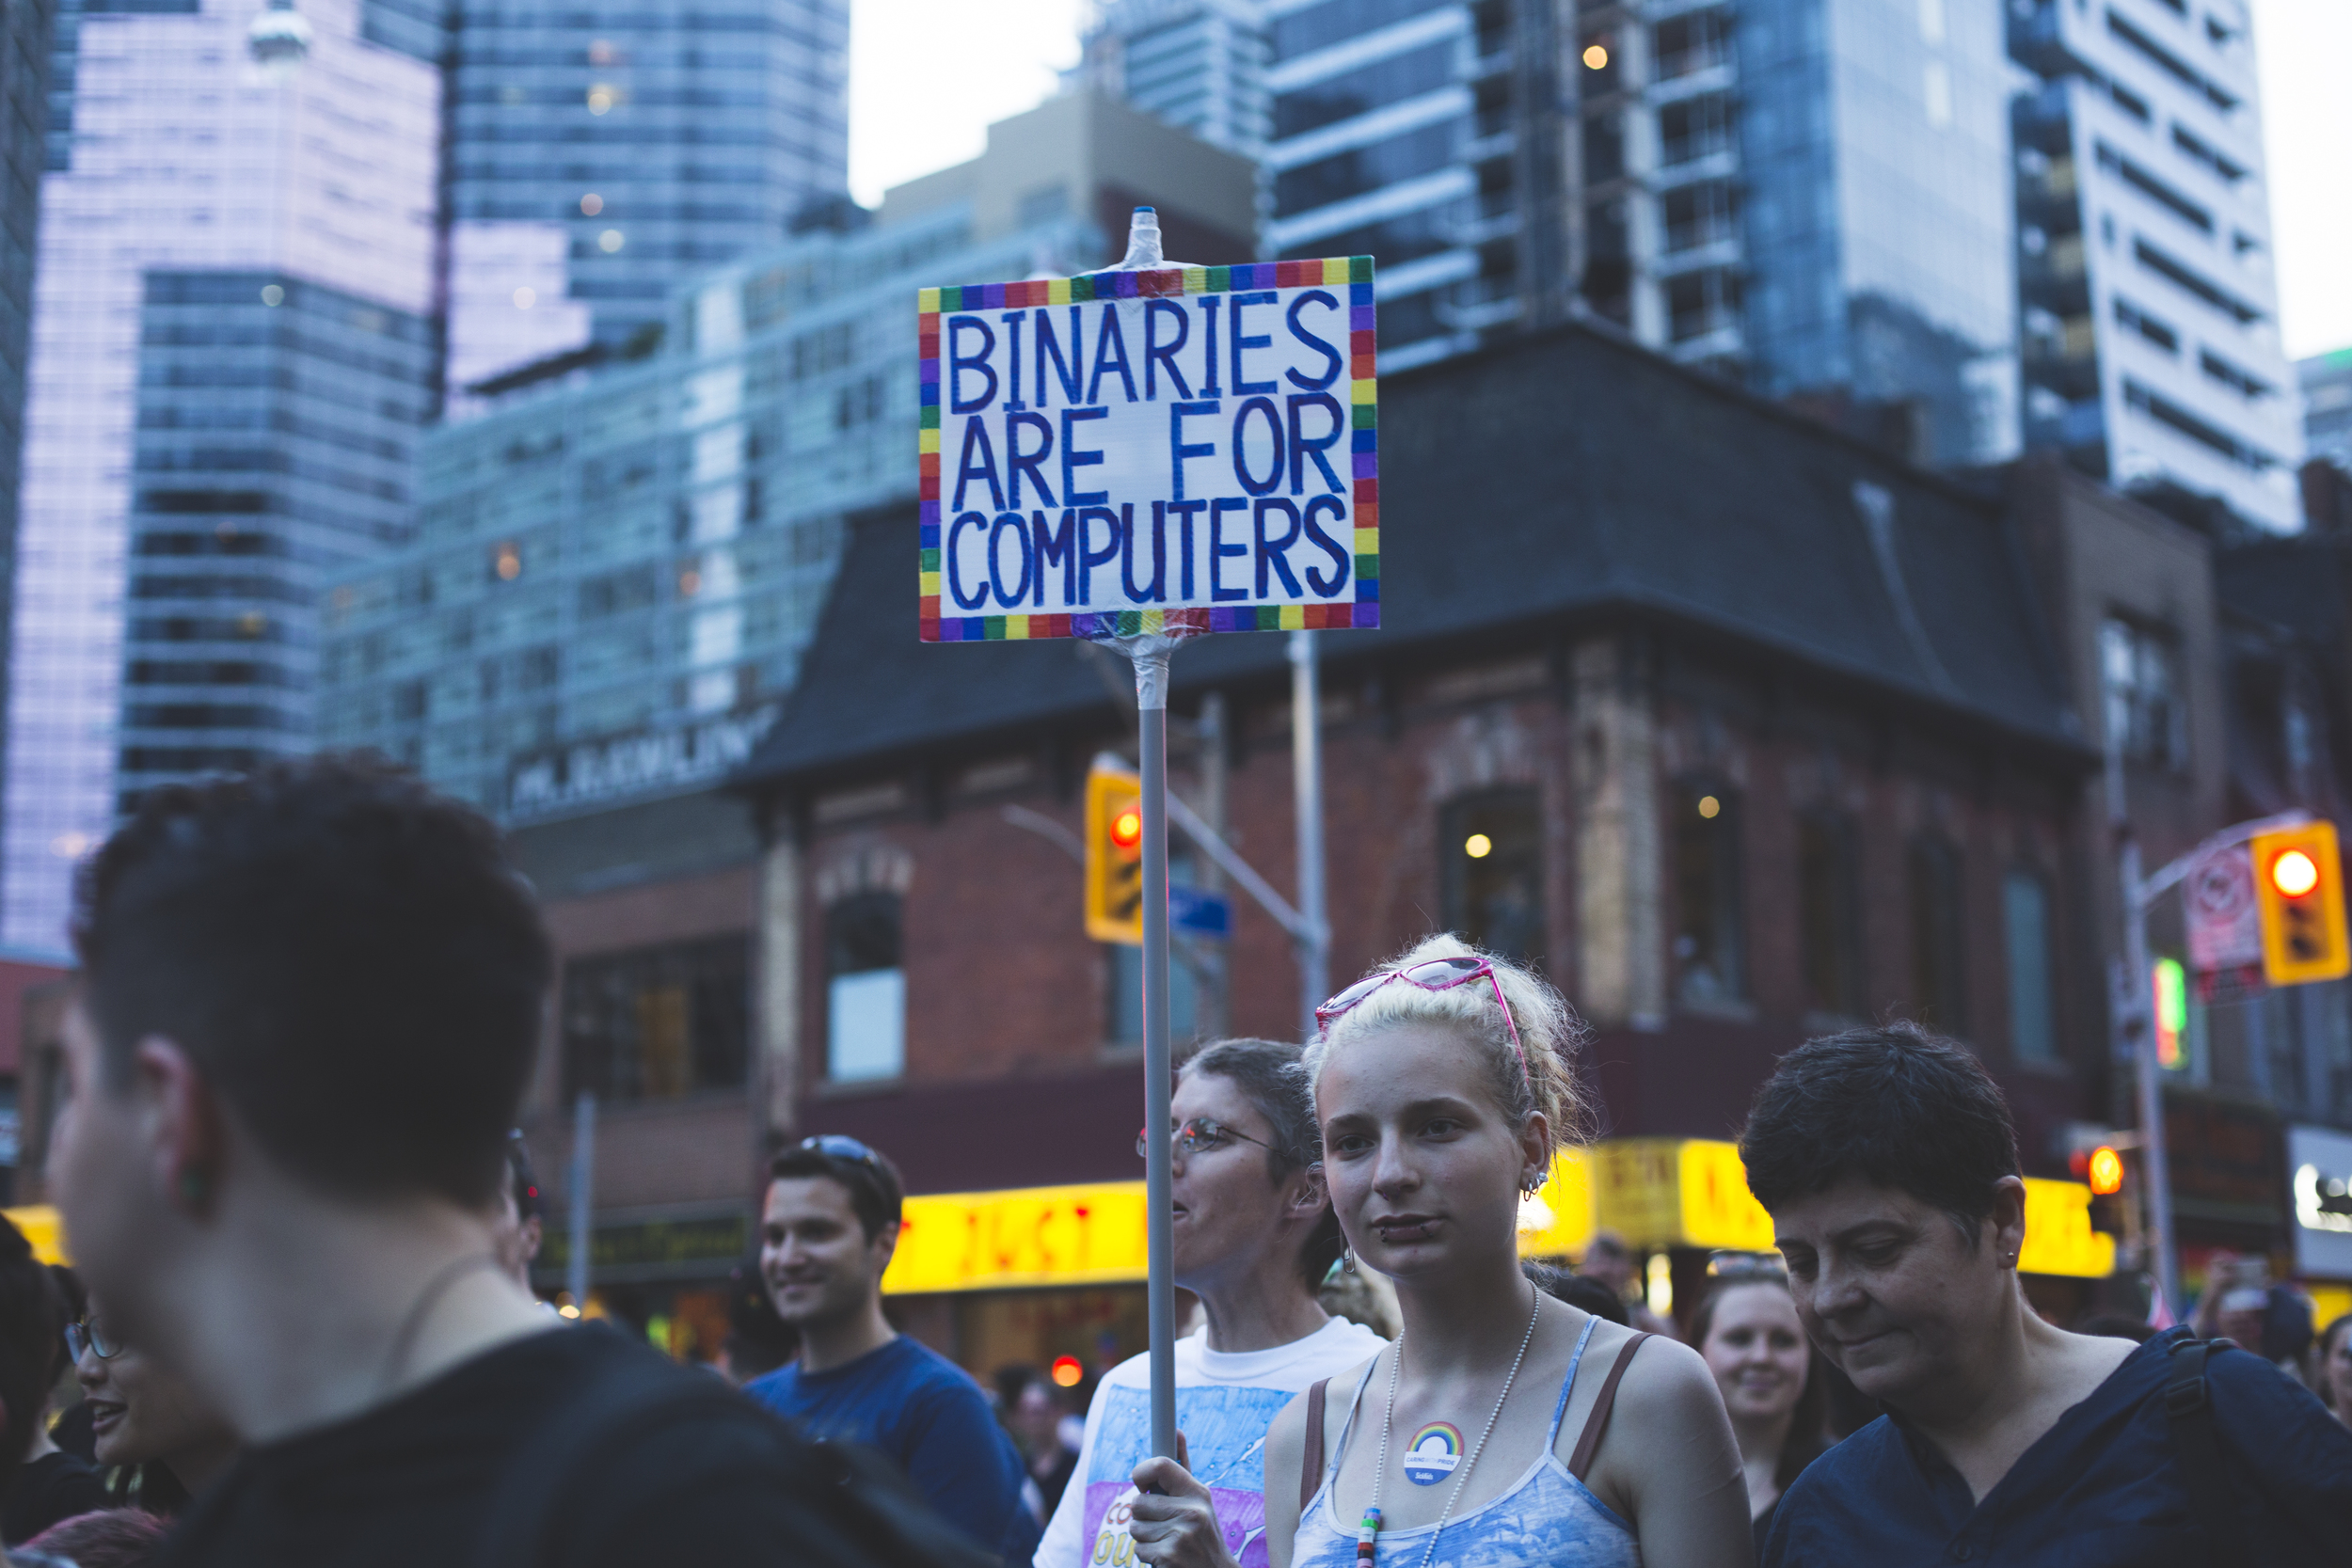 Pride_Toronto_2015_Trans_Pride_March_by_Indeana_Underhill-29.jpg